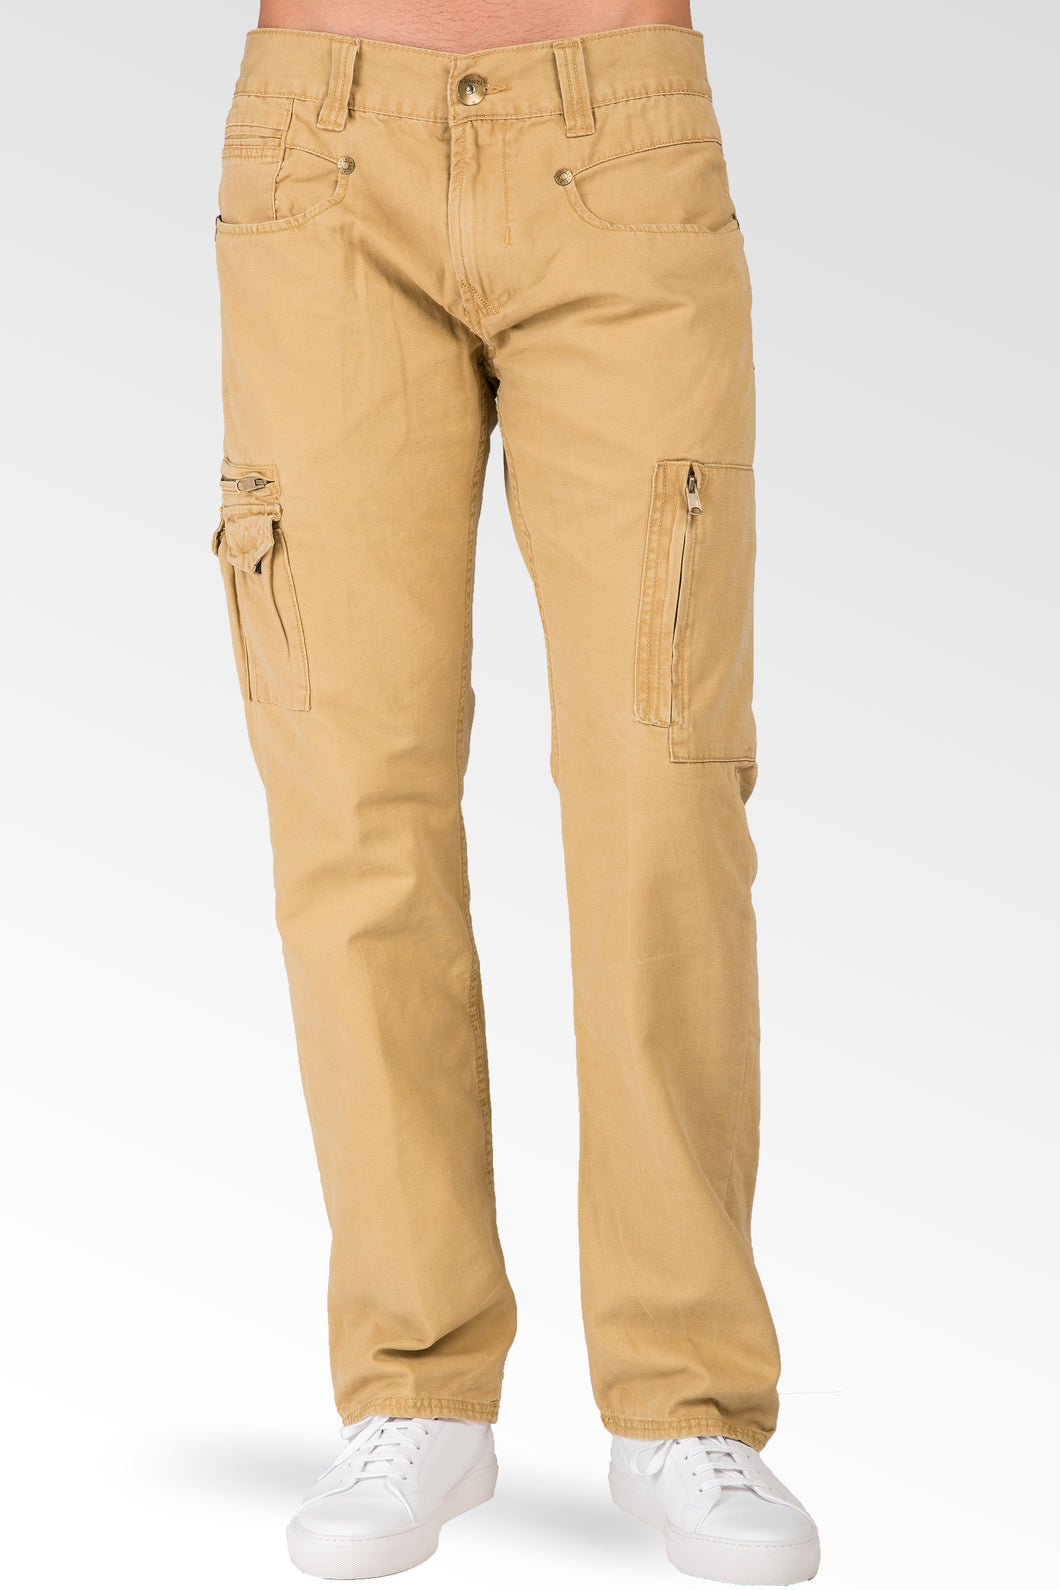 Relaxed Straight Tan Garment Washed Premium Canvas Utility Jeans Cargo Zipper Pockets